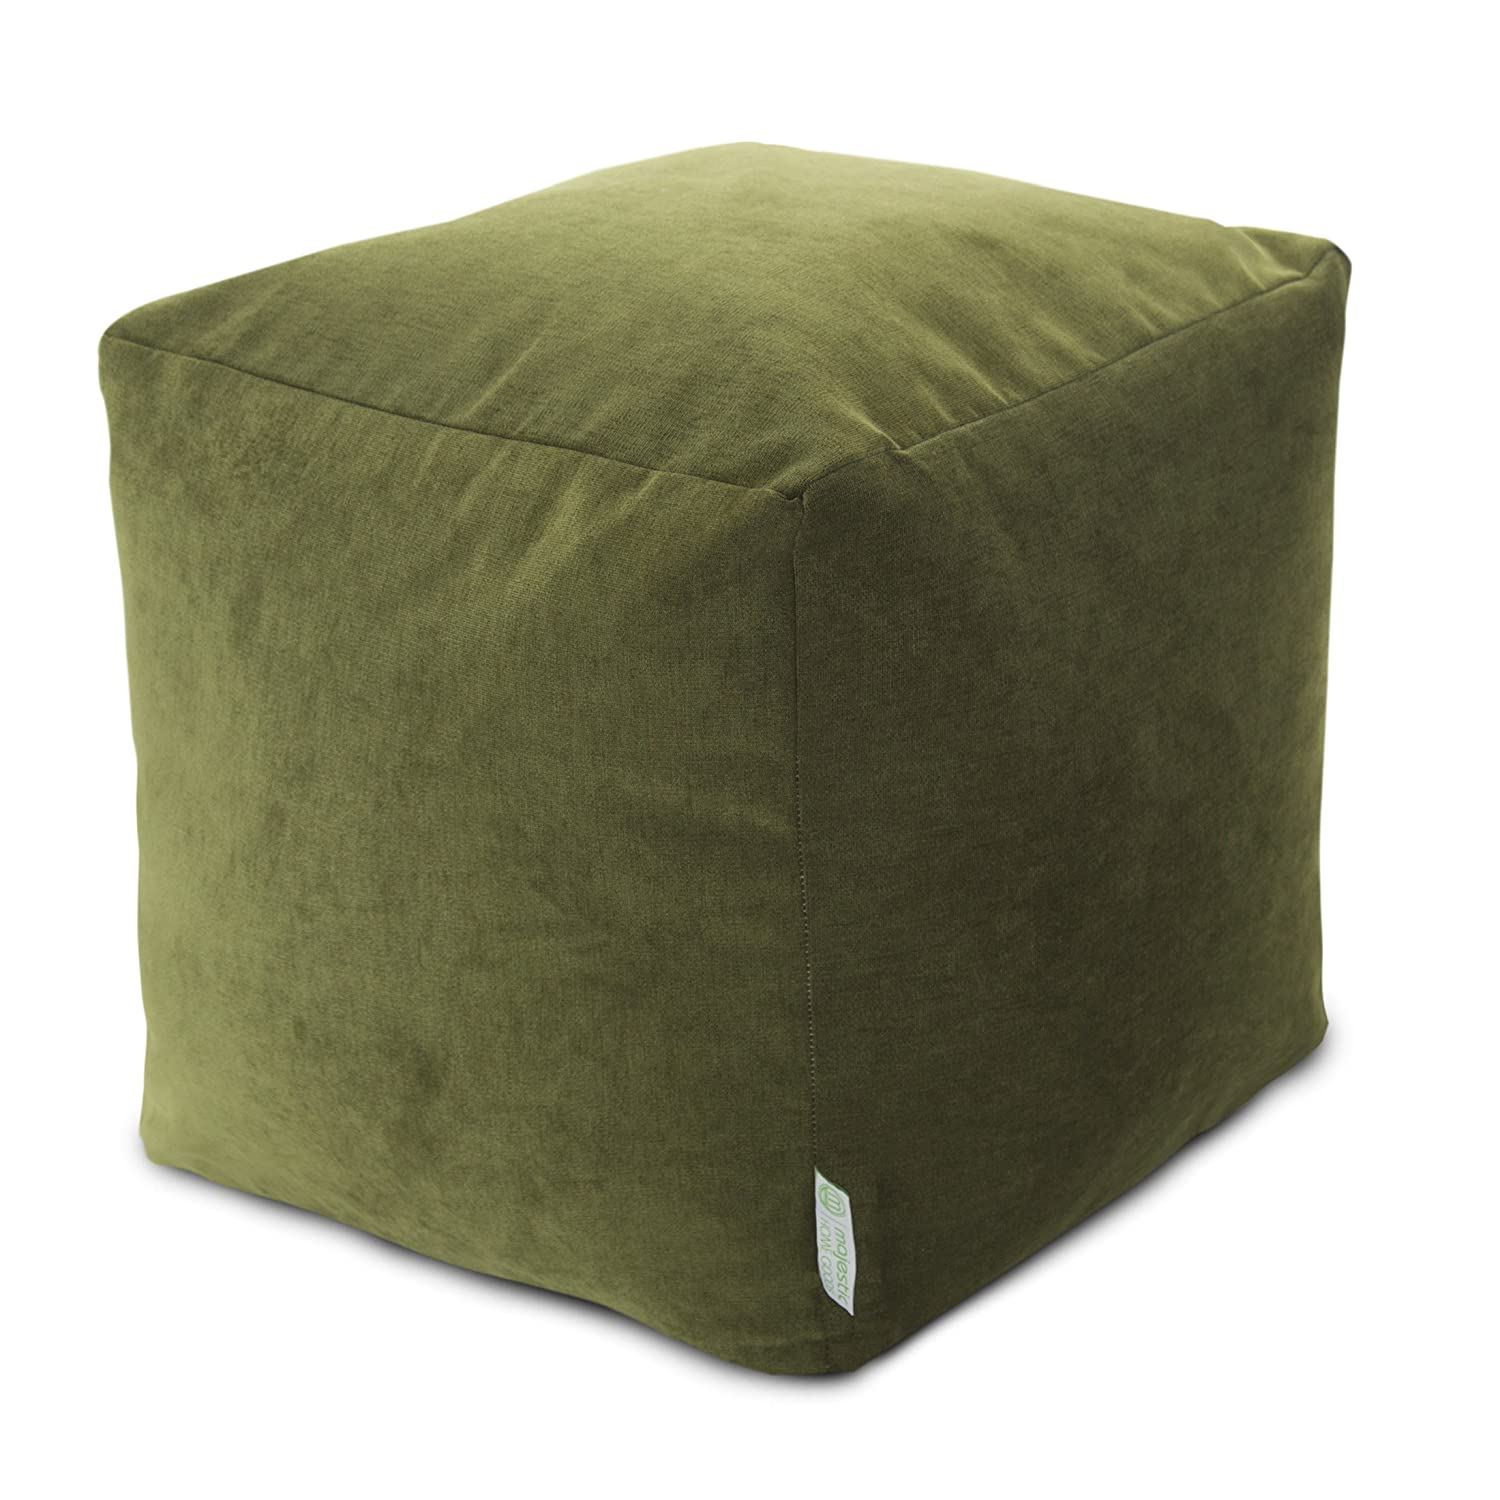 "Majestic Home Goods Fern Villa Indoor Bean Bag Ottoman Pouf Cube 17"" L x 17"" W x 17"" H"